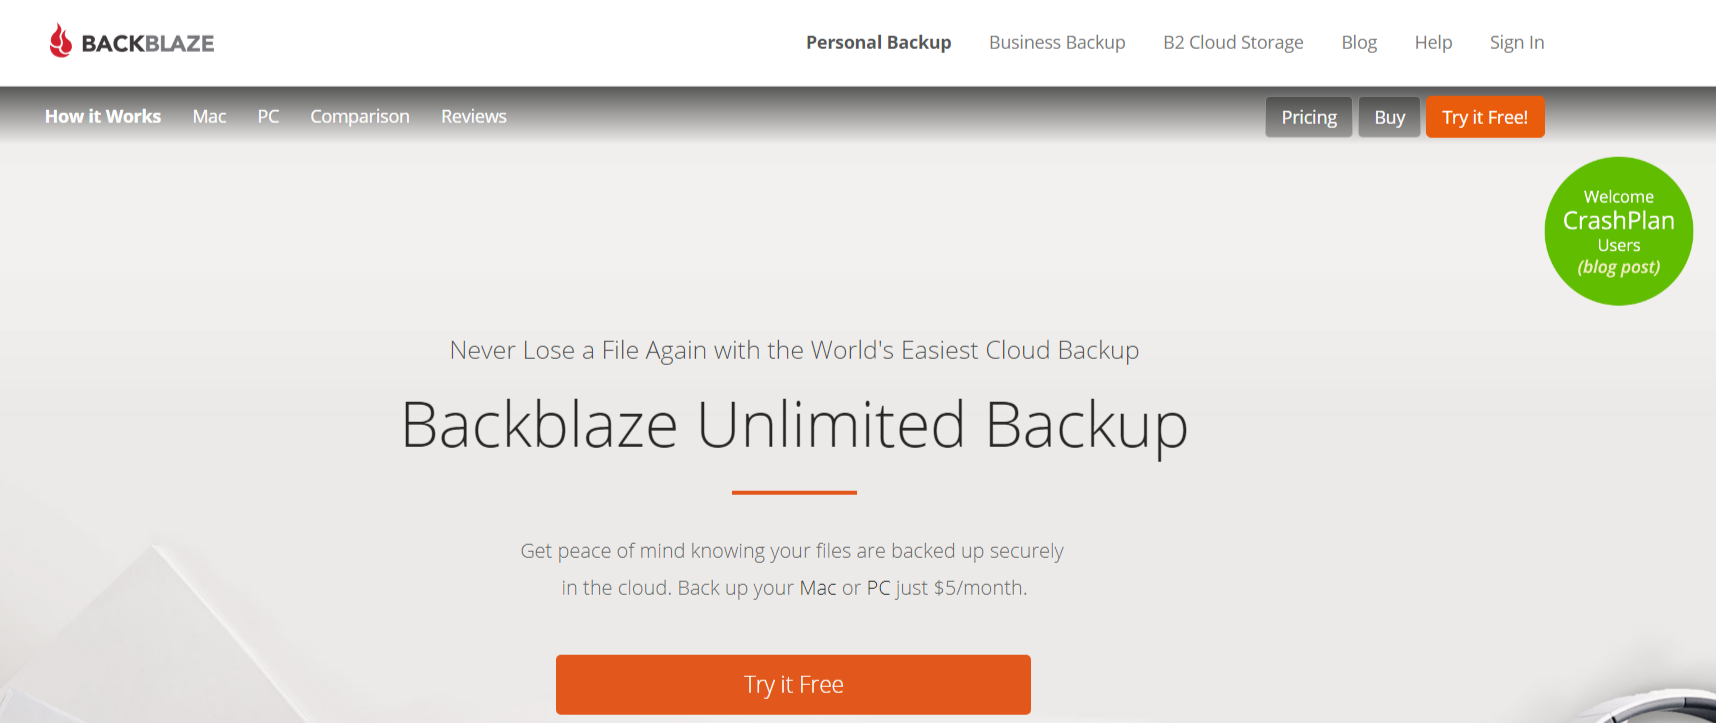 Backblaze- Best Cloud Backup Service For Mac